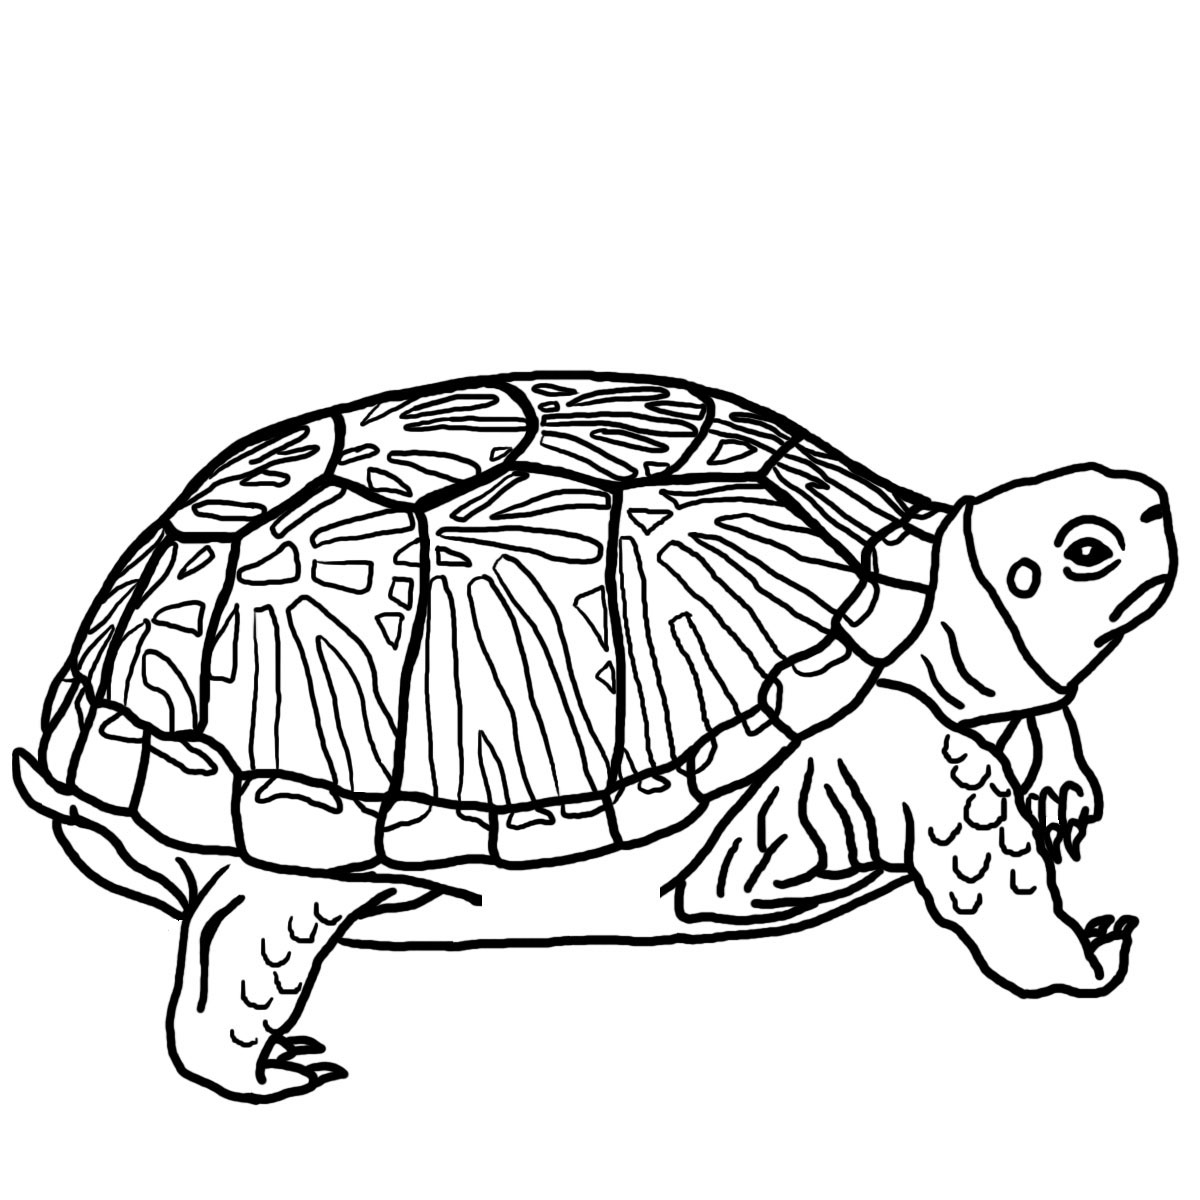 1200x1200 Free Turtle Clipart Black And White Image